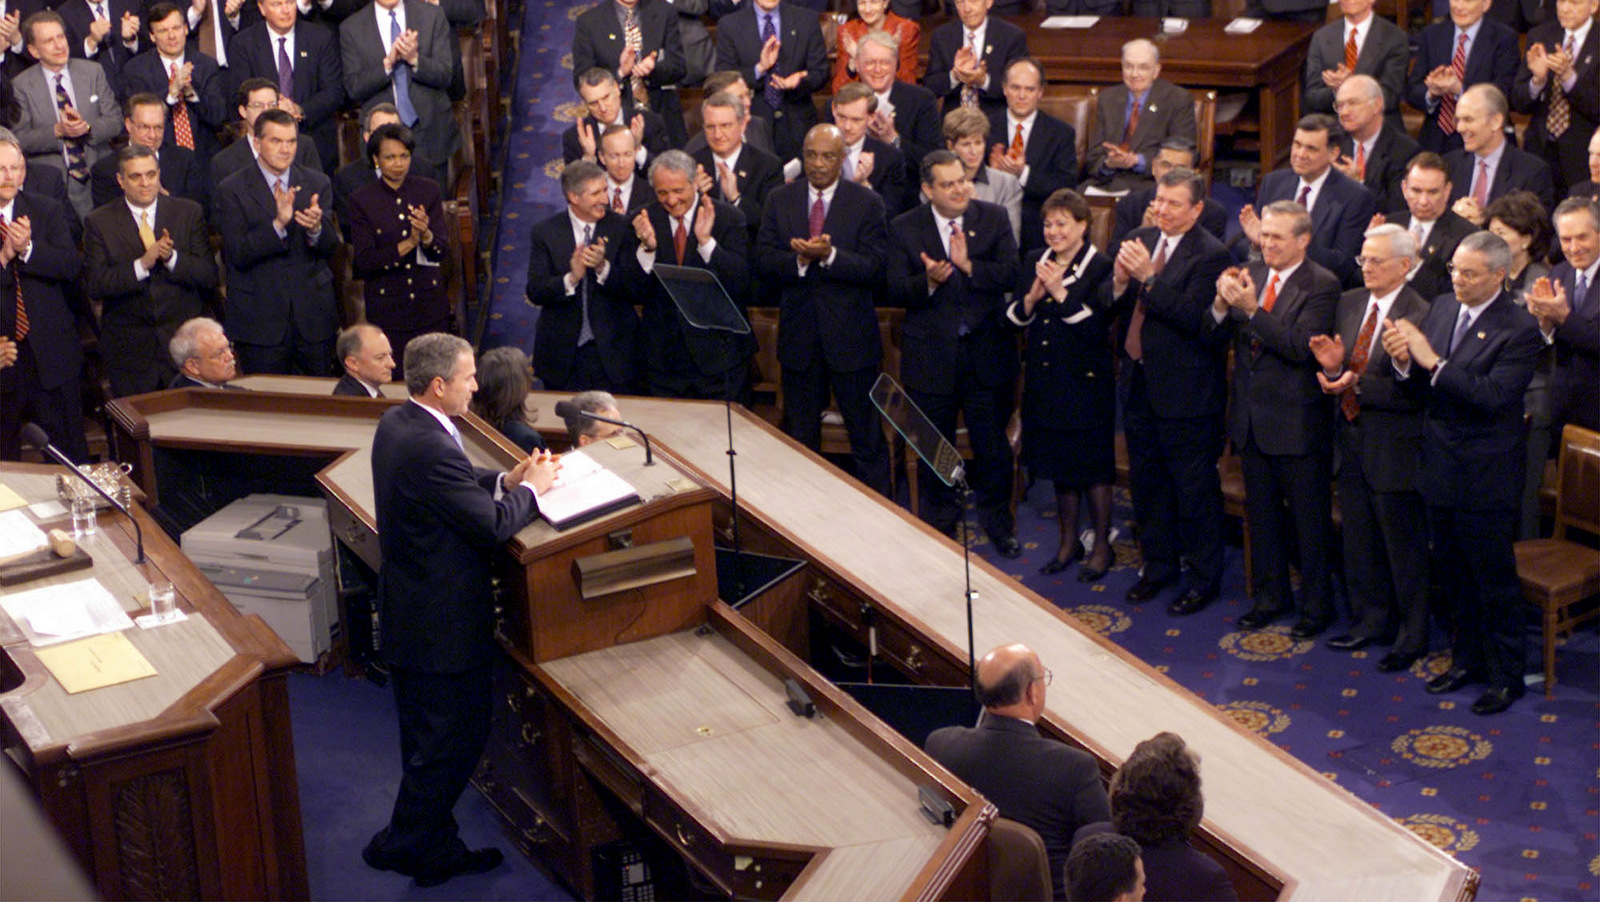 "President Bush gives his State of the Union address on Capitol Hill Tuesday, Jan. 29, 2002. Bush fleshed out his vision for the war on terrorism beyond Afghanistan, to a dozen countries that he said harbor terrorists and ""an axis of evil"" of three more that seek weapons of mass destruction, including Syria. (AP/J.Scott Applewhite)"